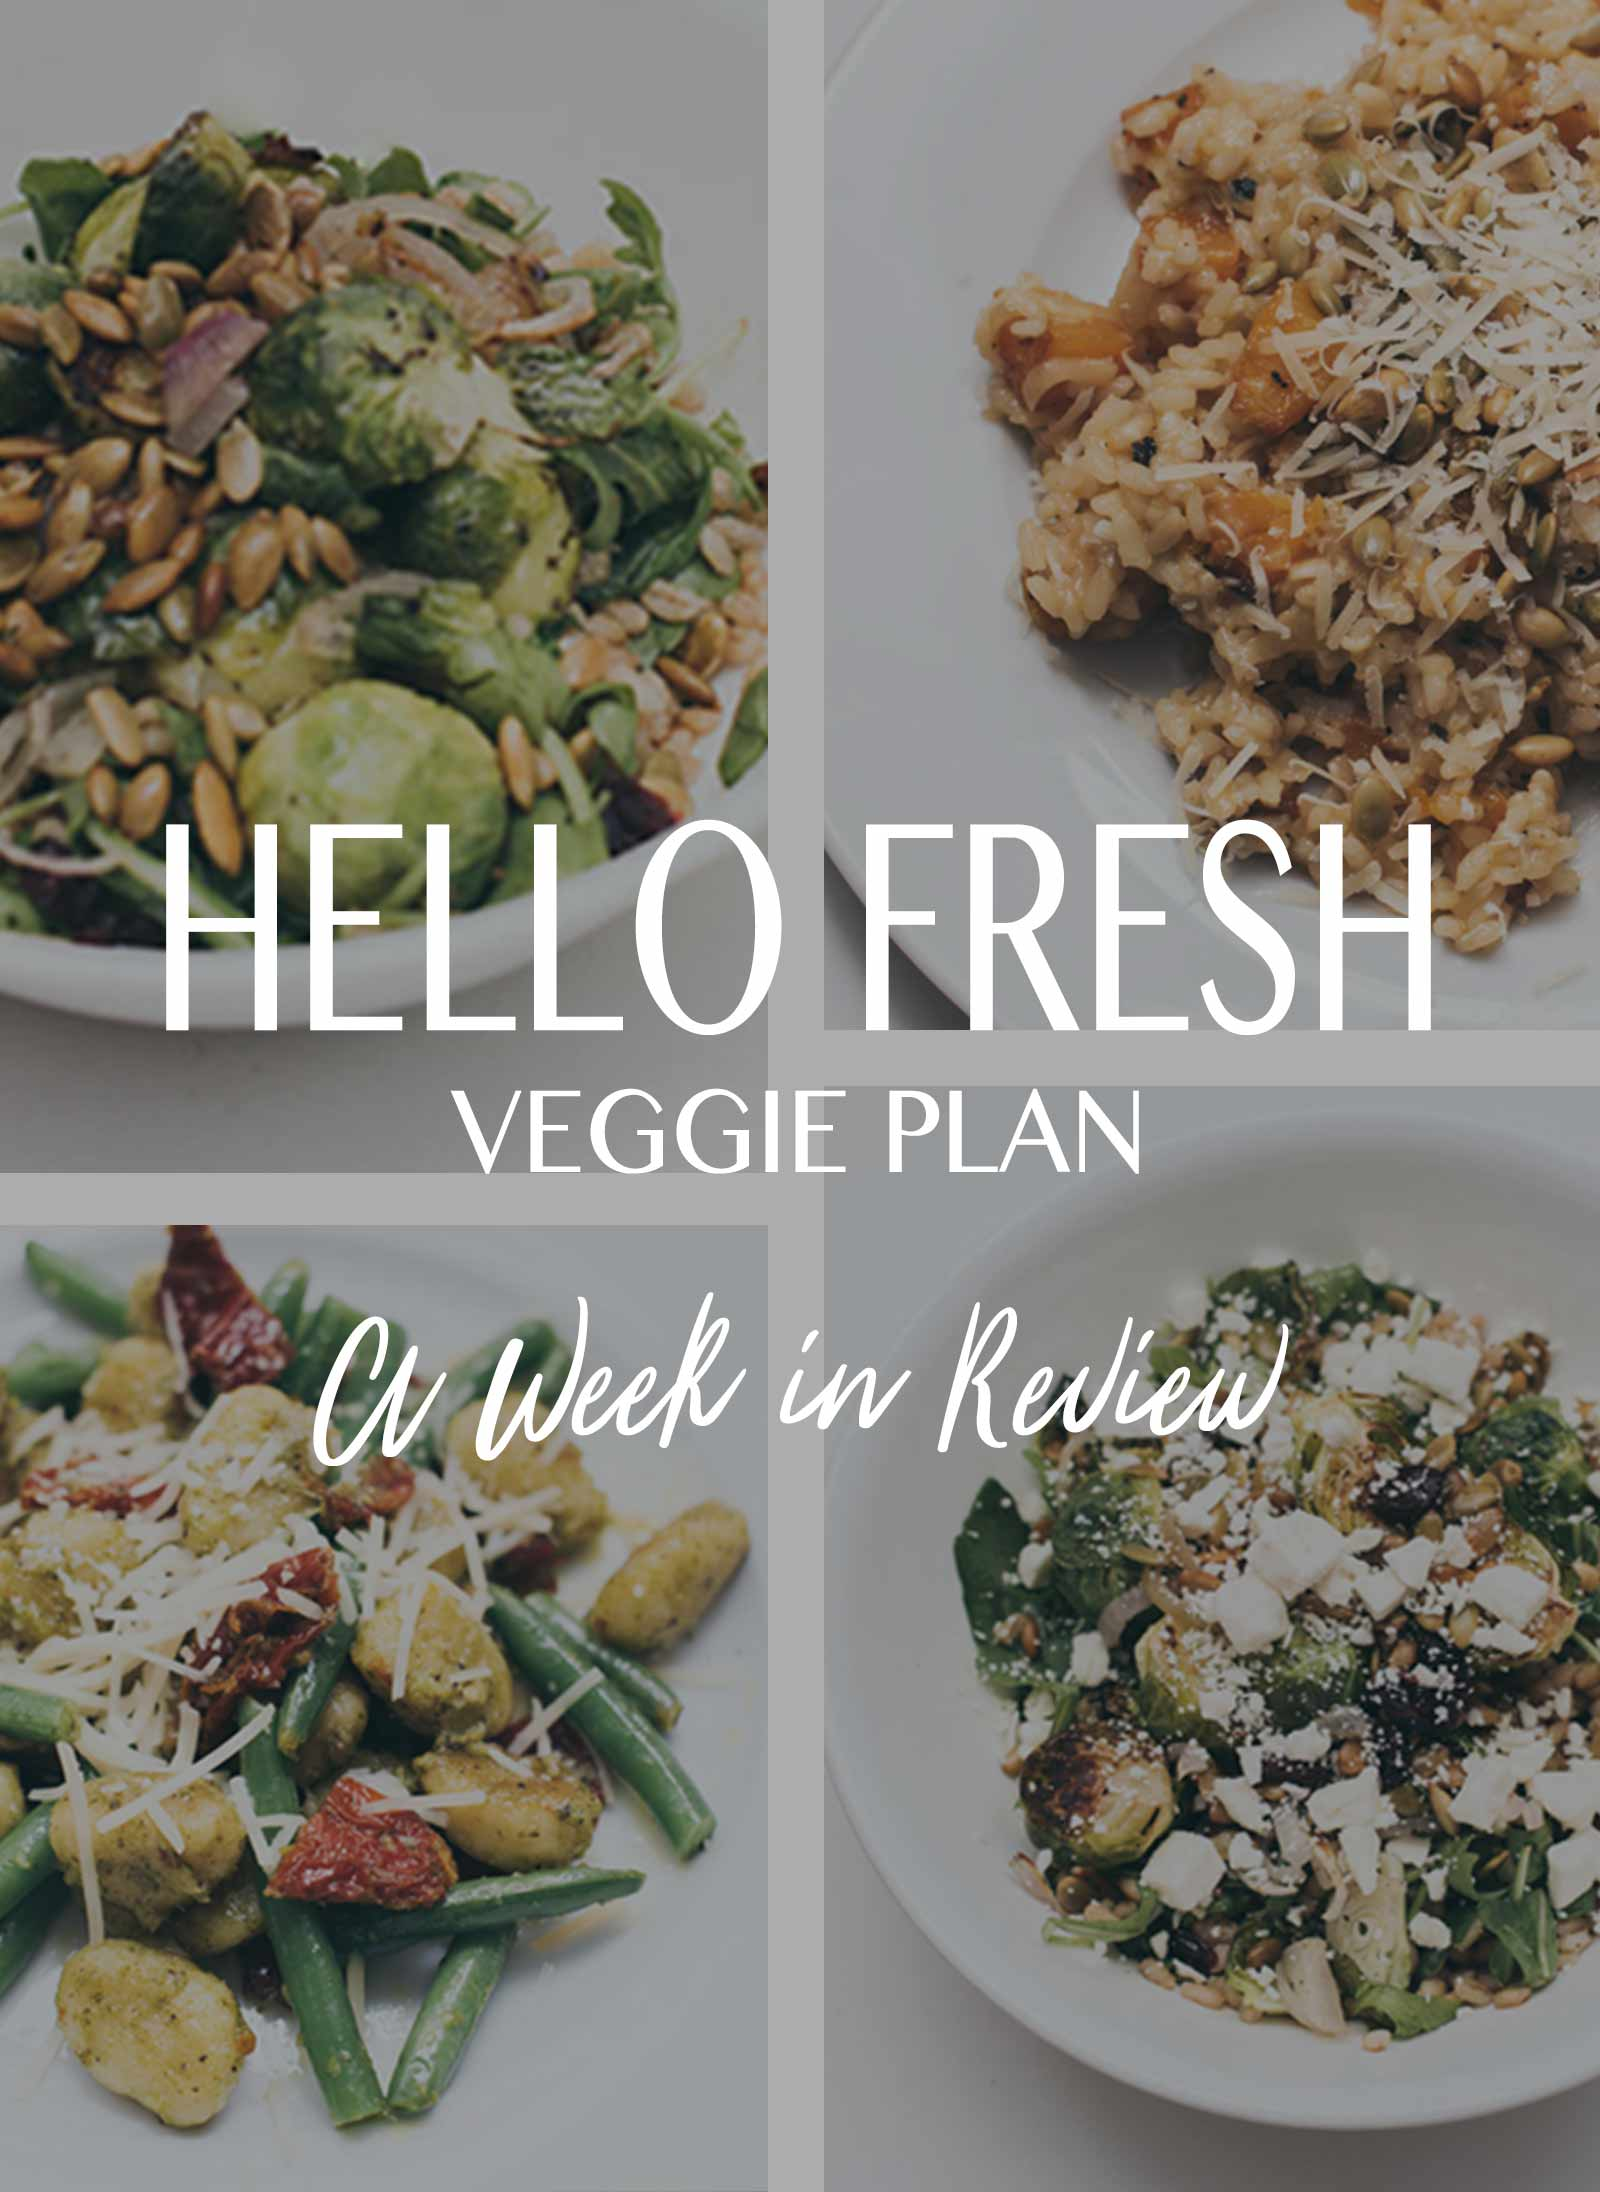 Cheap Prices Hellofresh  Meal Kit Delivery Service